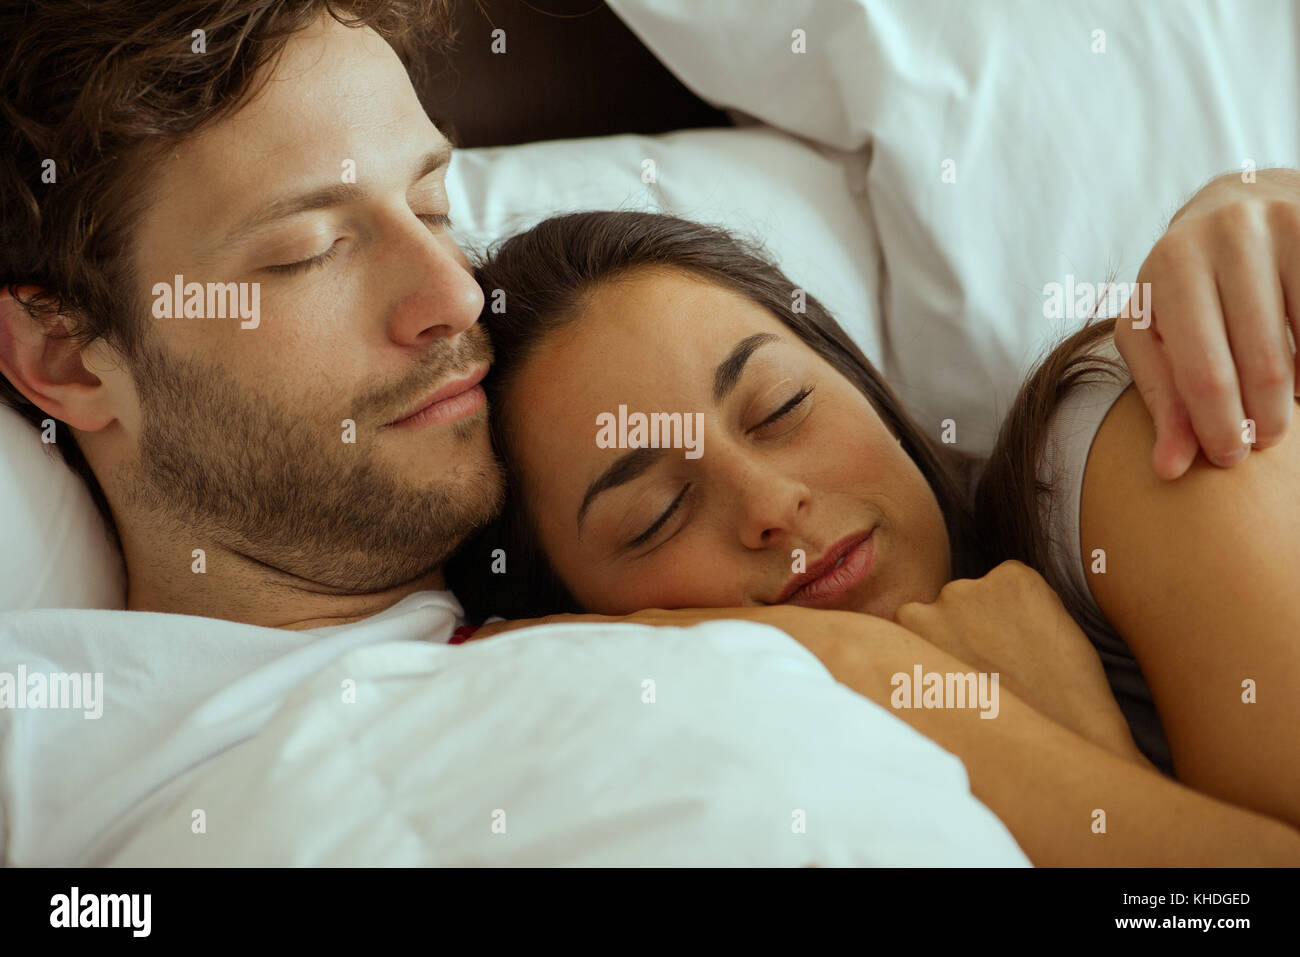 Couple resting and embracing in bed Stock Photo